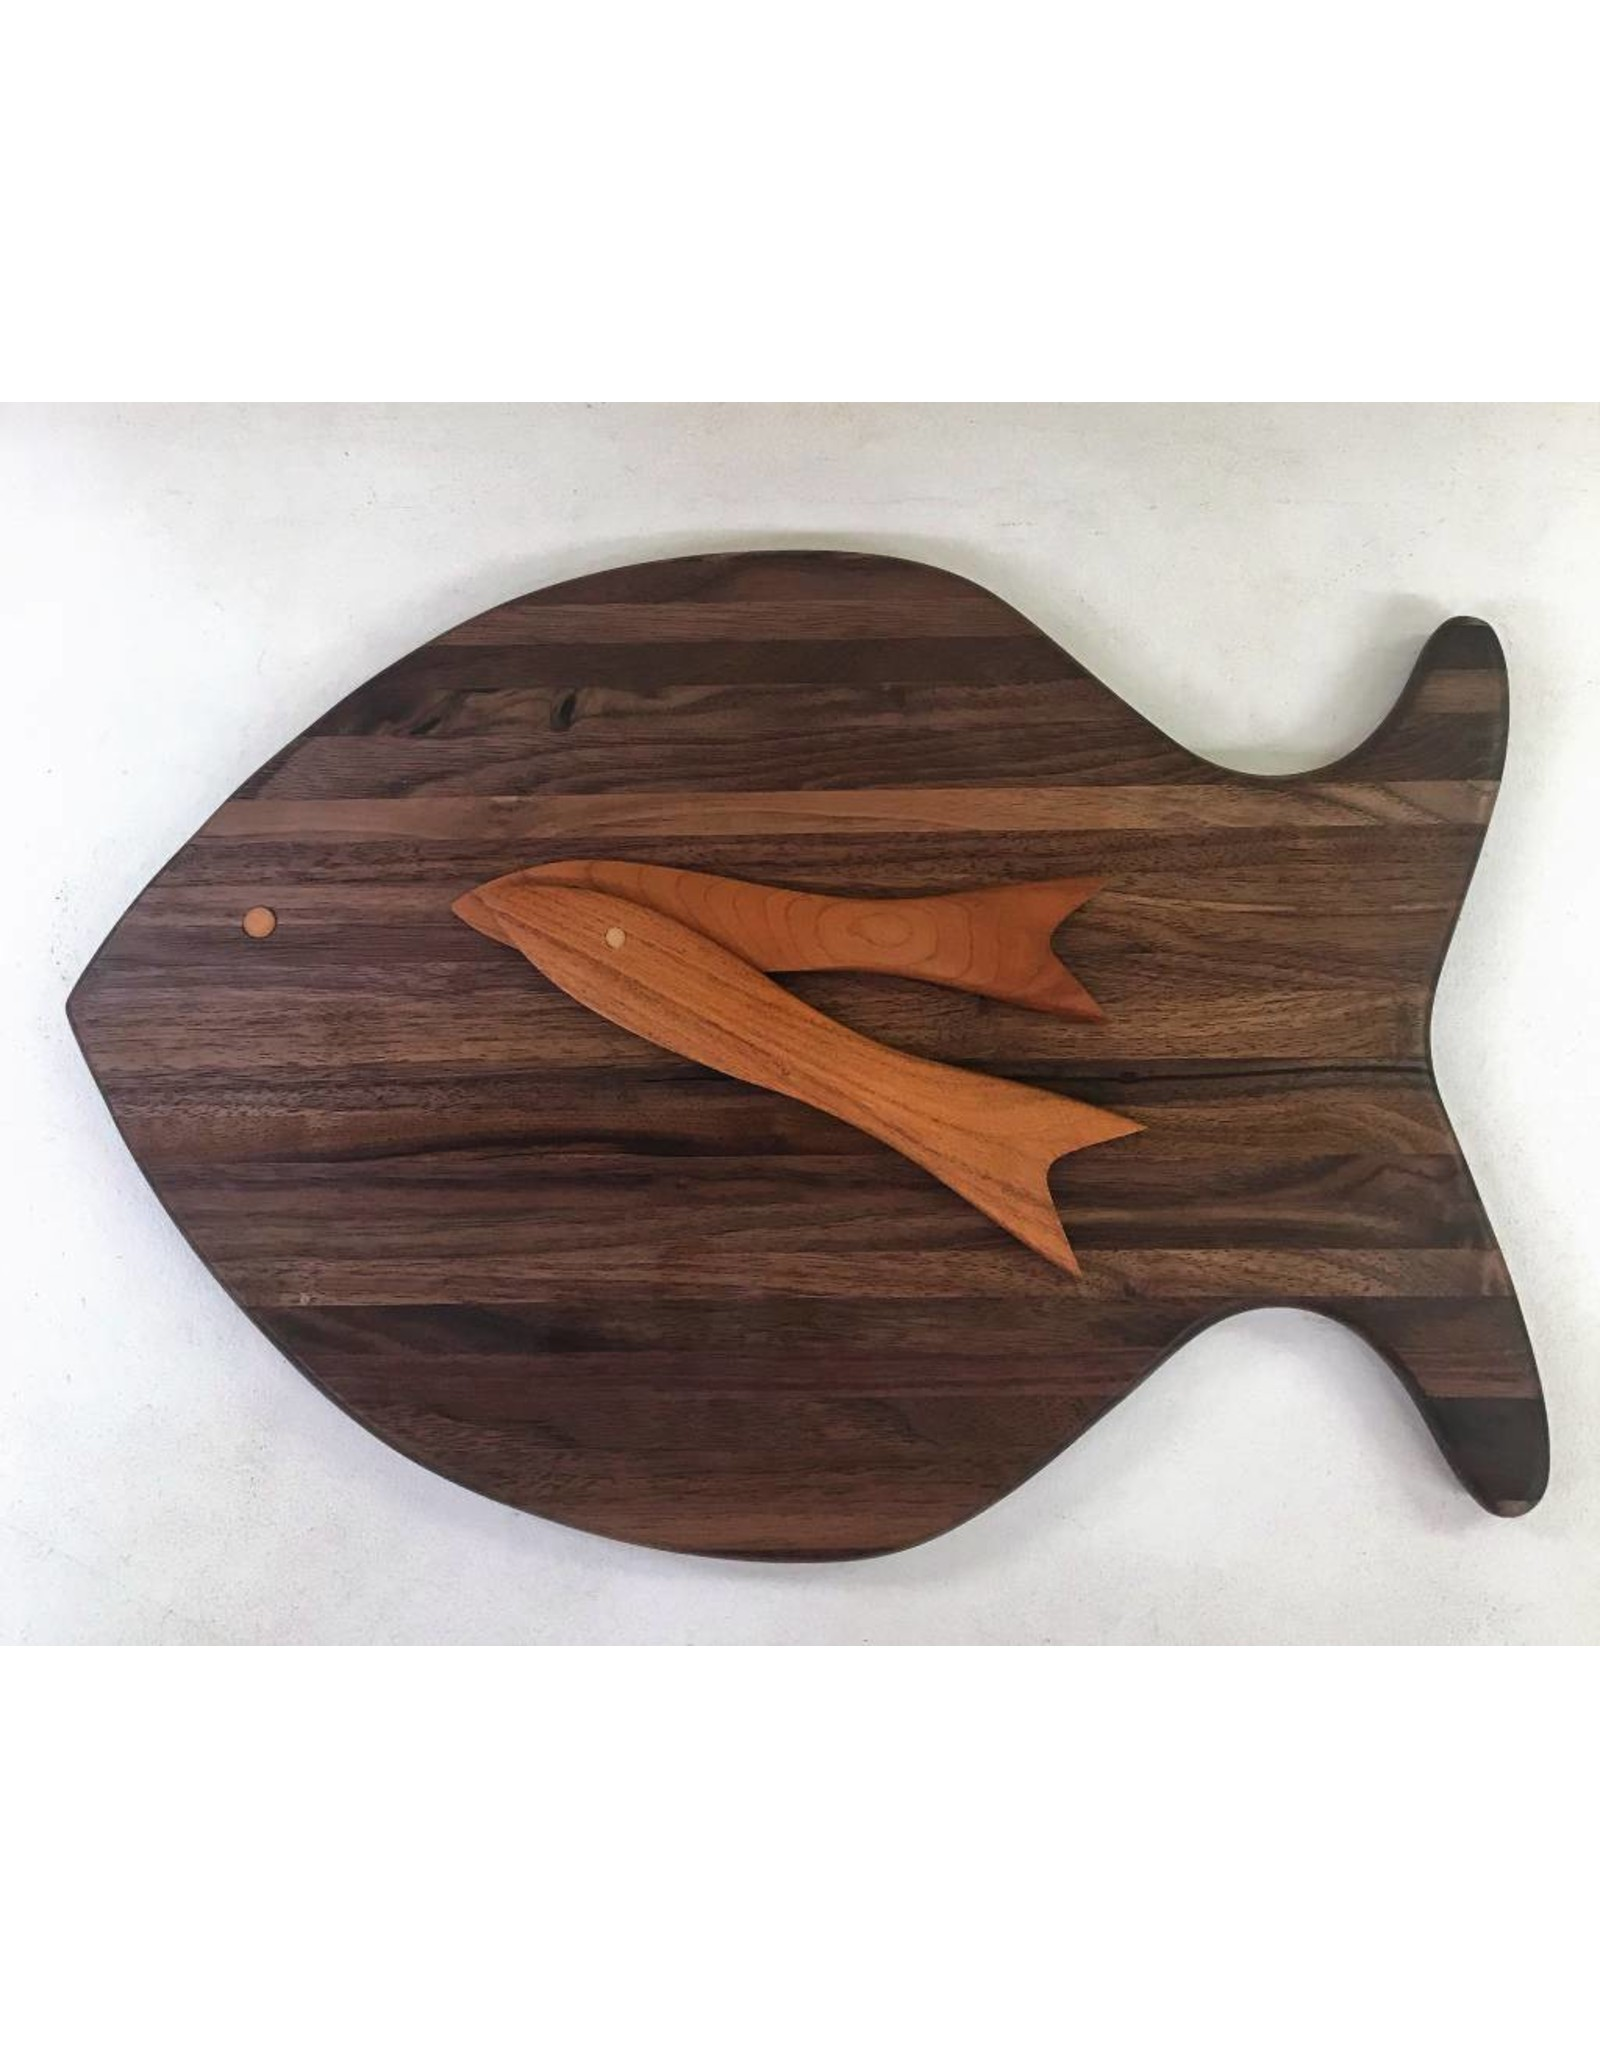 Richard Rose Culinary Fish shaped Cutting Board Walnut